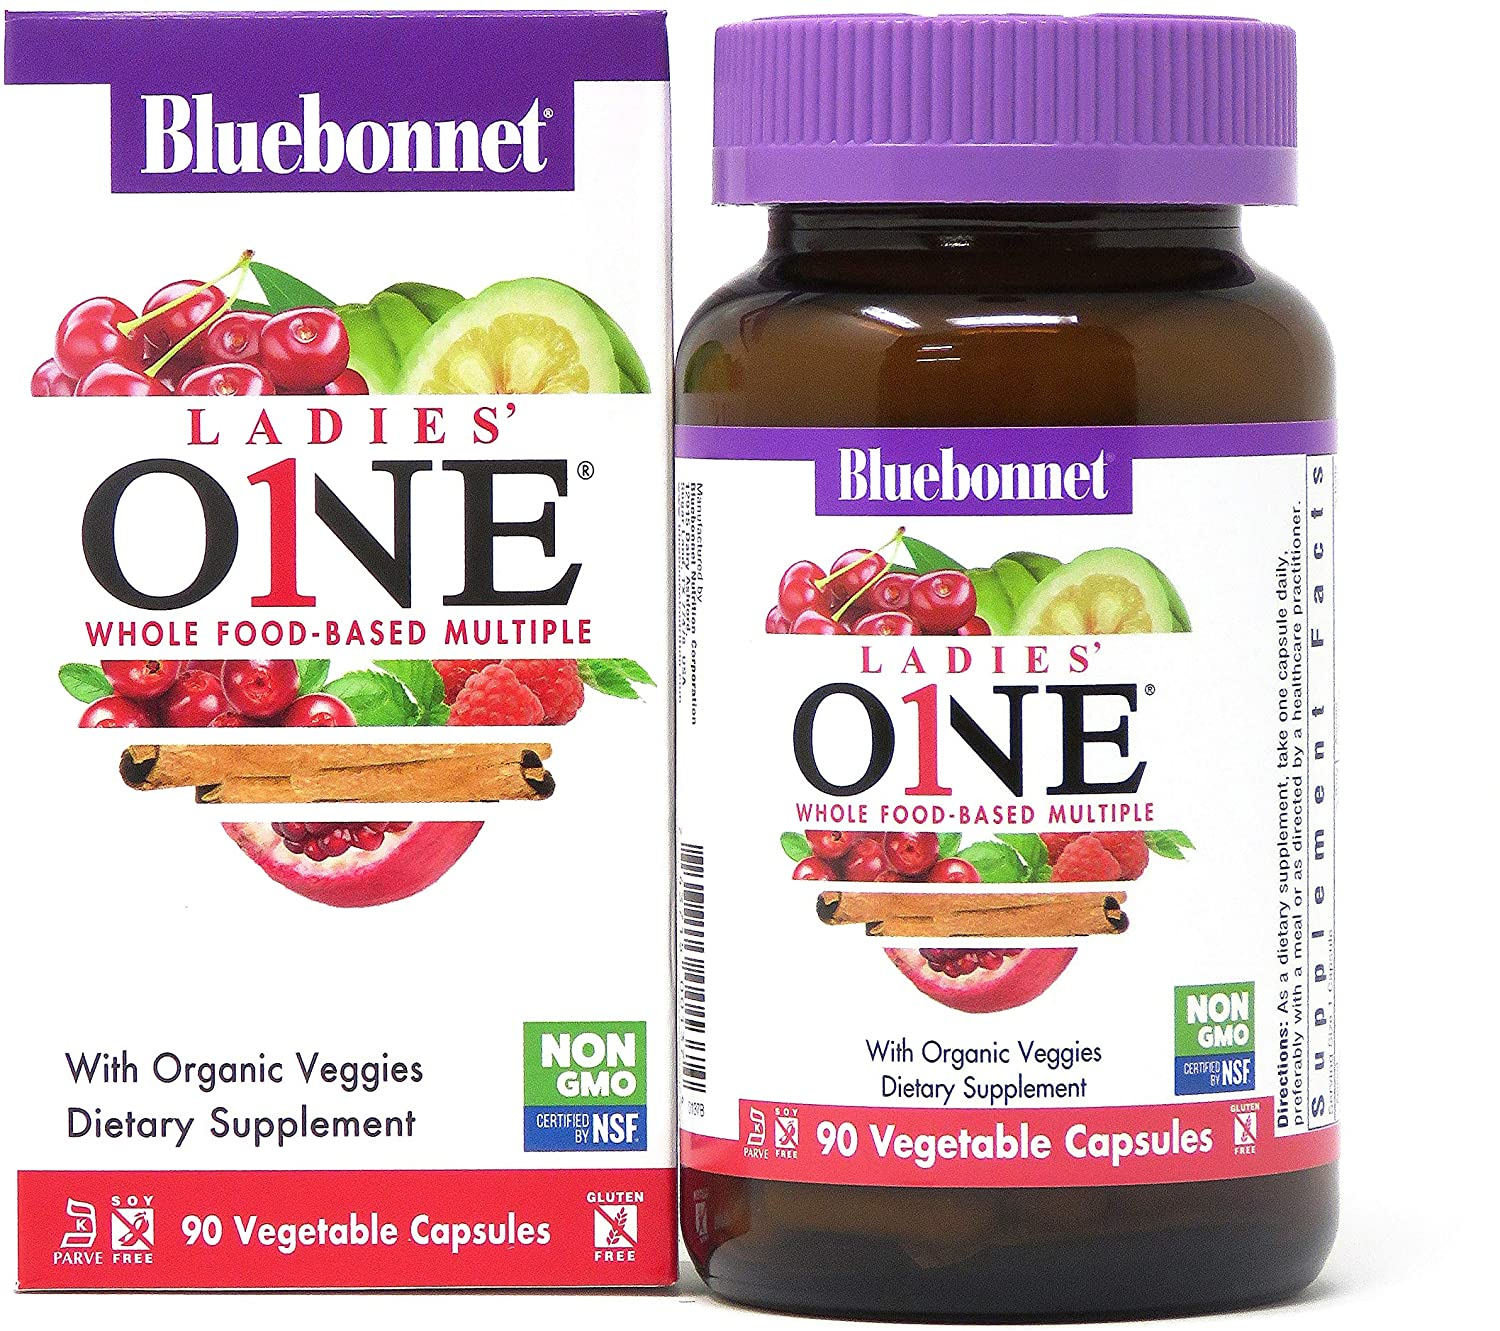 Bluebonnet Nutrition Ladies One Vegetable Capsule, Whole Food Multiple, K2, Organic Vegetable, Energy, Vitality, Non-GMO, Gluten Free, Soy Free, Milk Free, Kosher, 90 Vegetable Capsule, 3 Month Supply